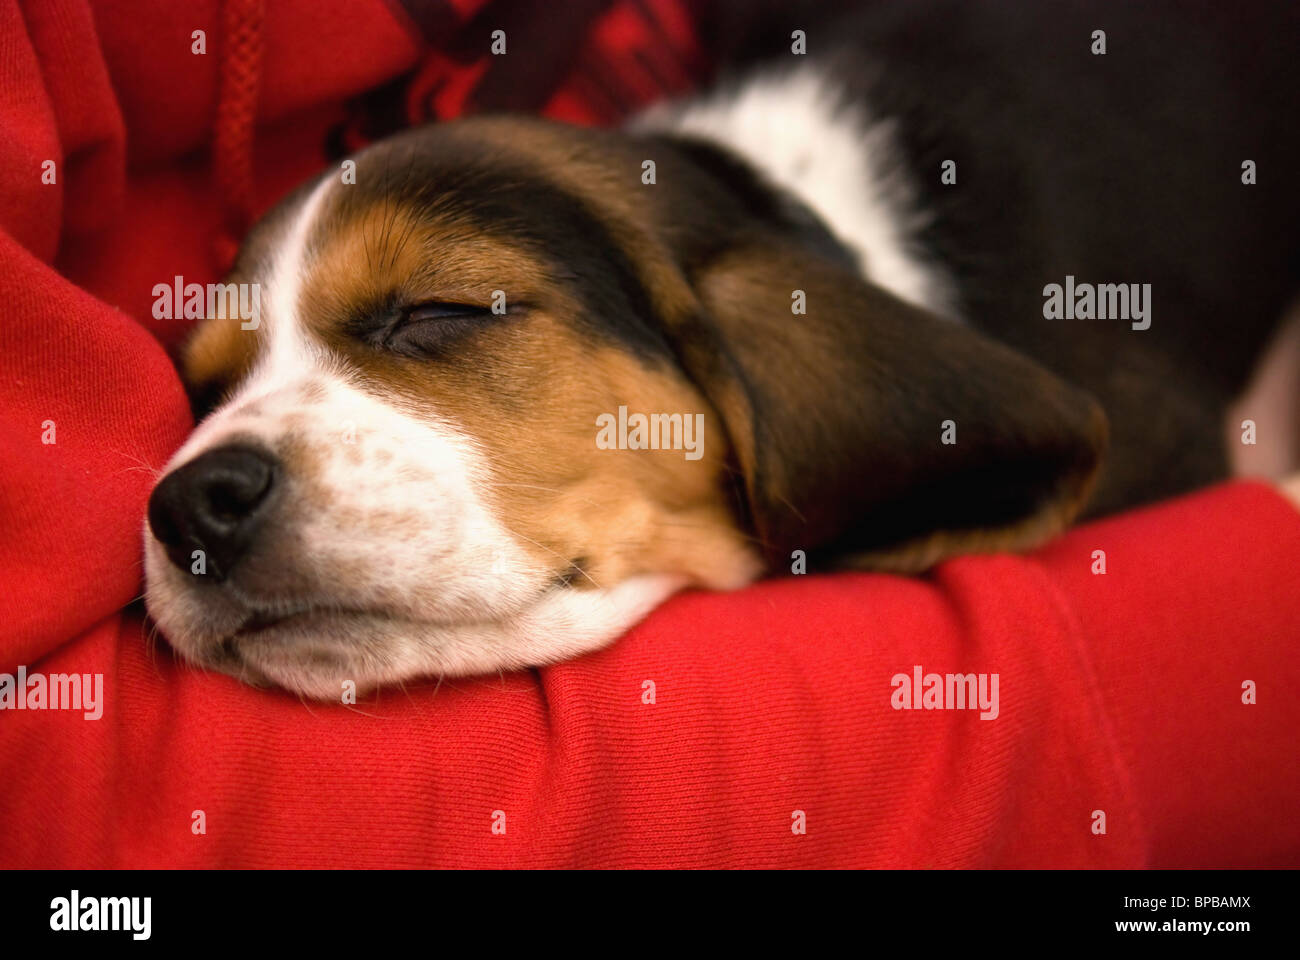 bashaw, alberta, canada; a dog naps on a red blanket - Stock Image